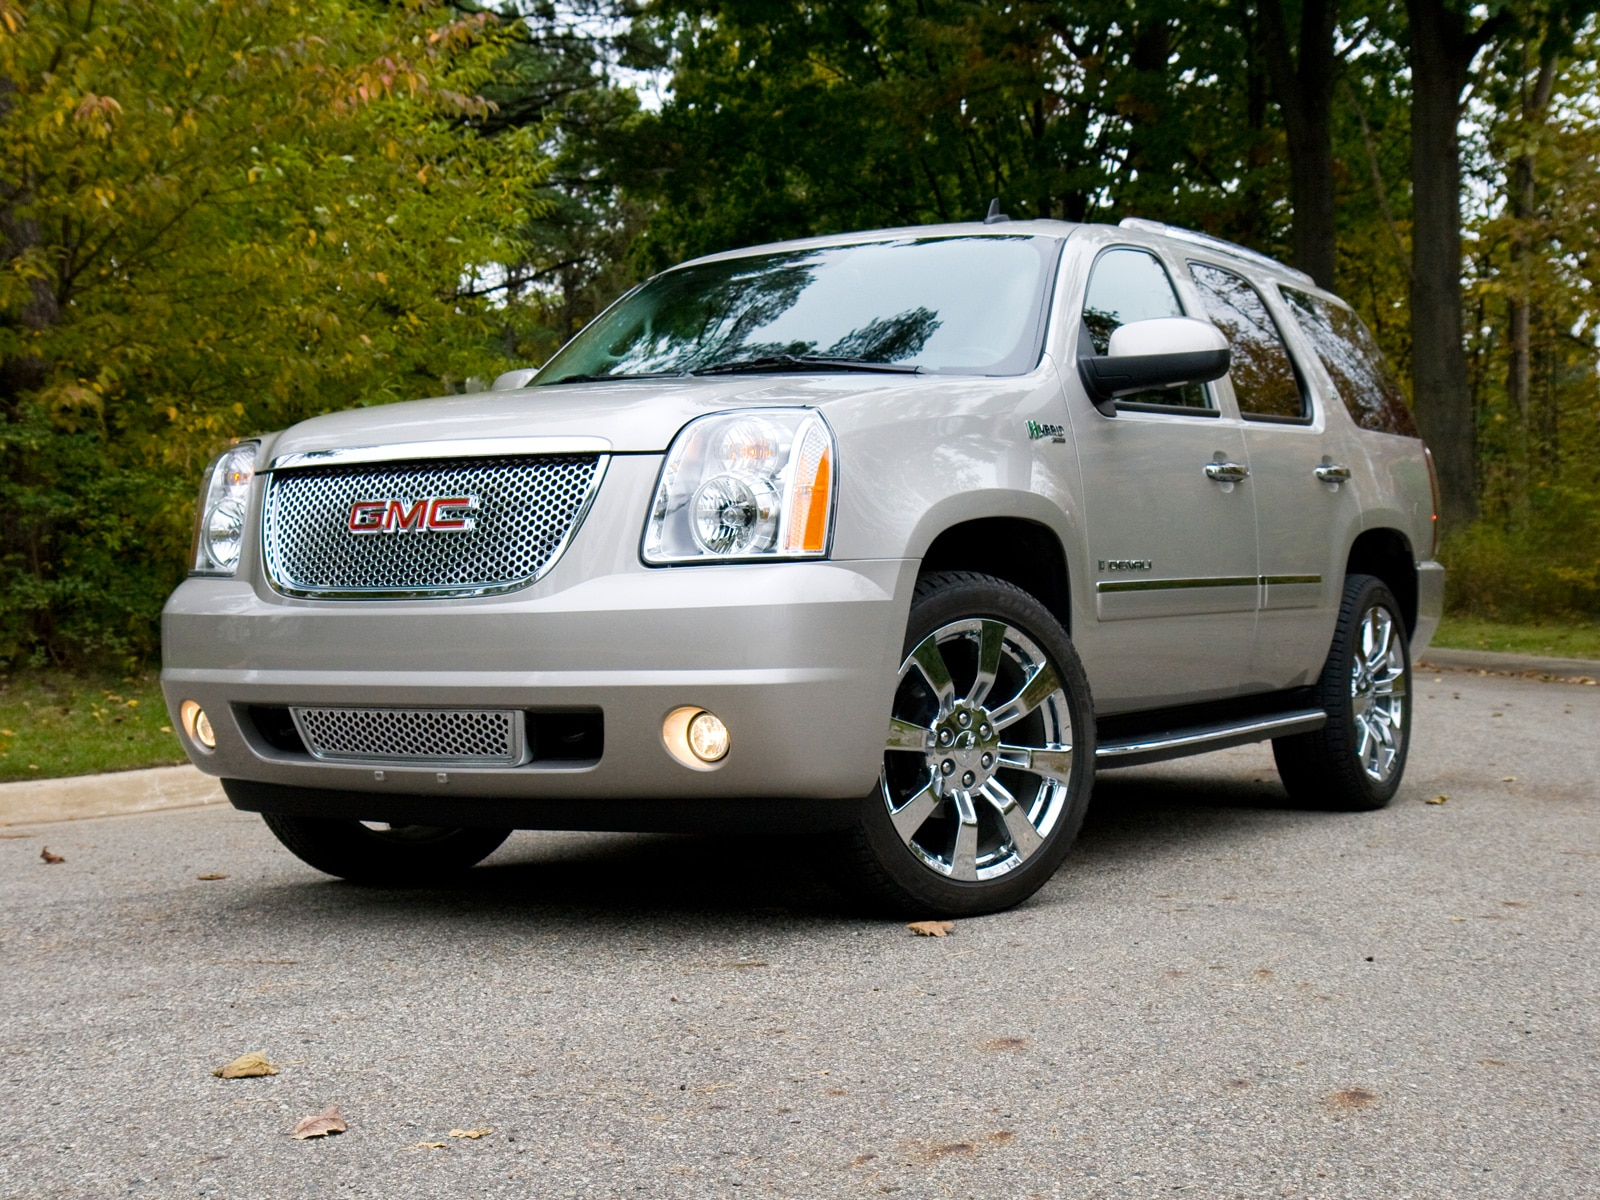 0911 12 Z 2009 GMC Yukon Denali Hybrid Front Three Quarter View